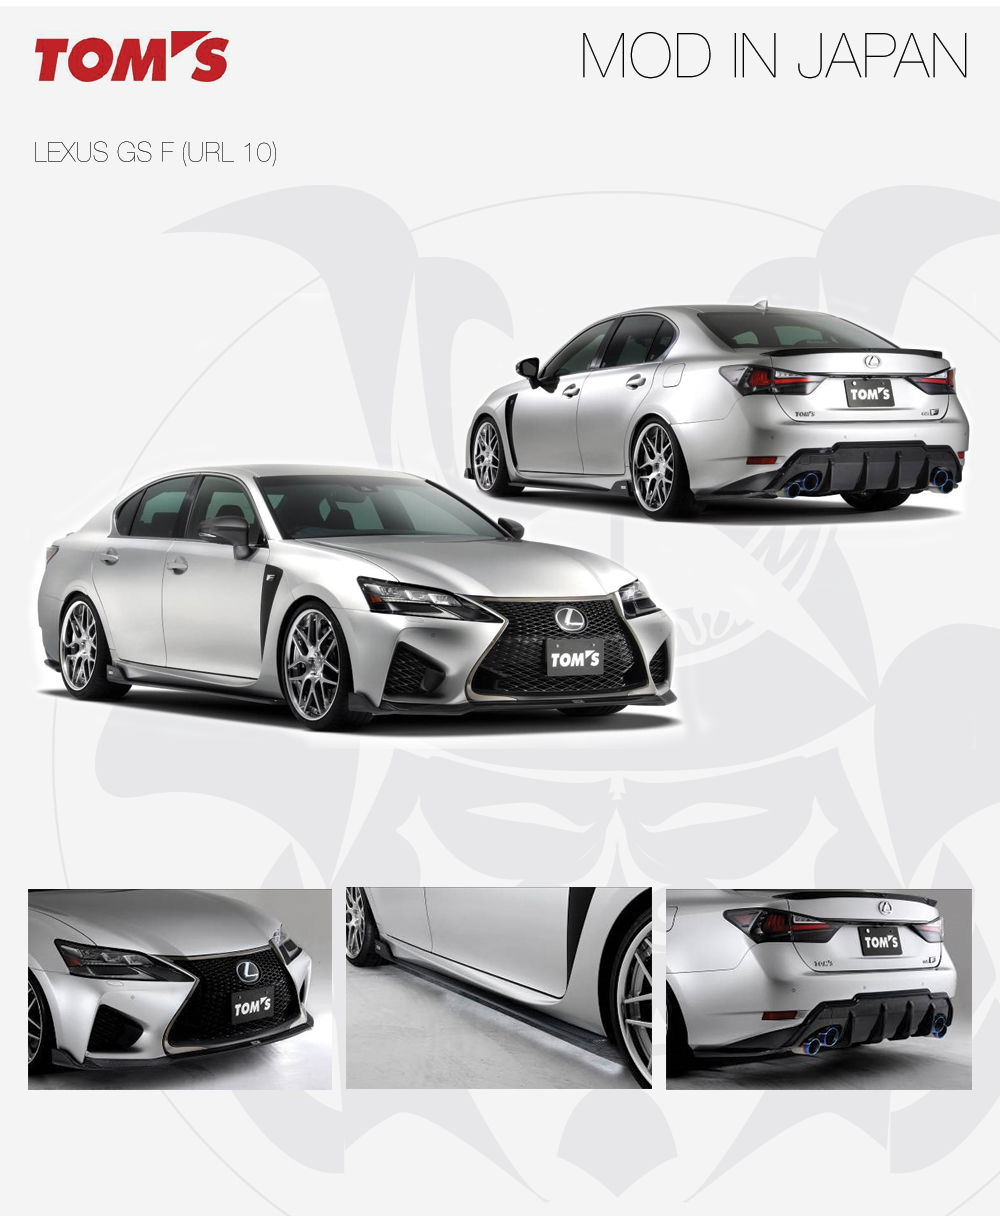 Used Lexus In Nj: New Product Tom's Racing Japan Lexus GS F Aero Kit In